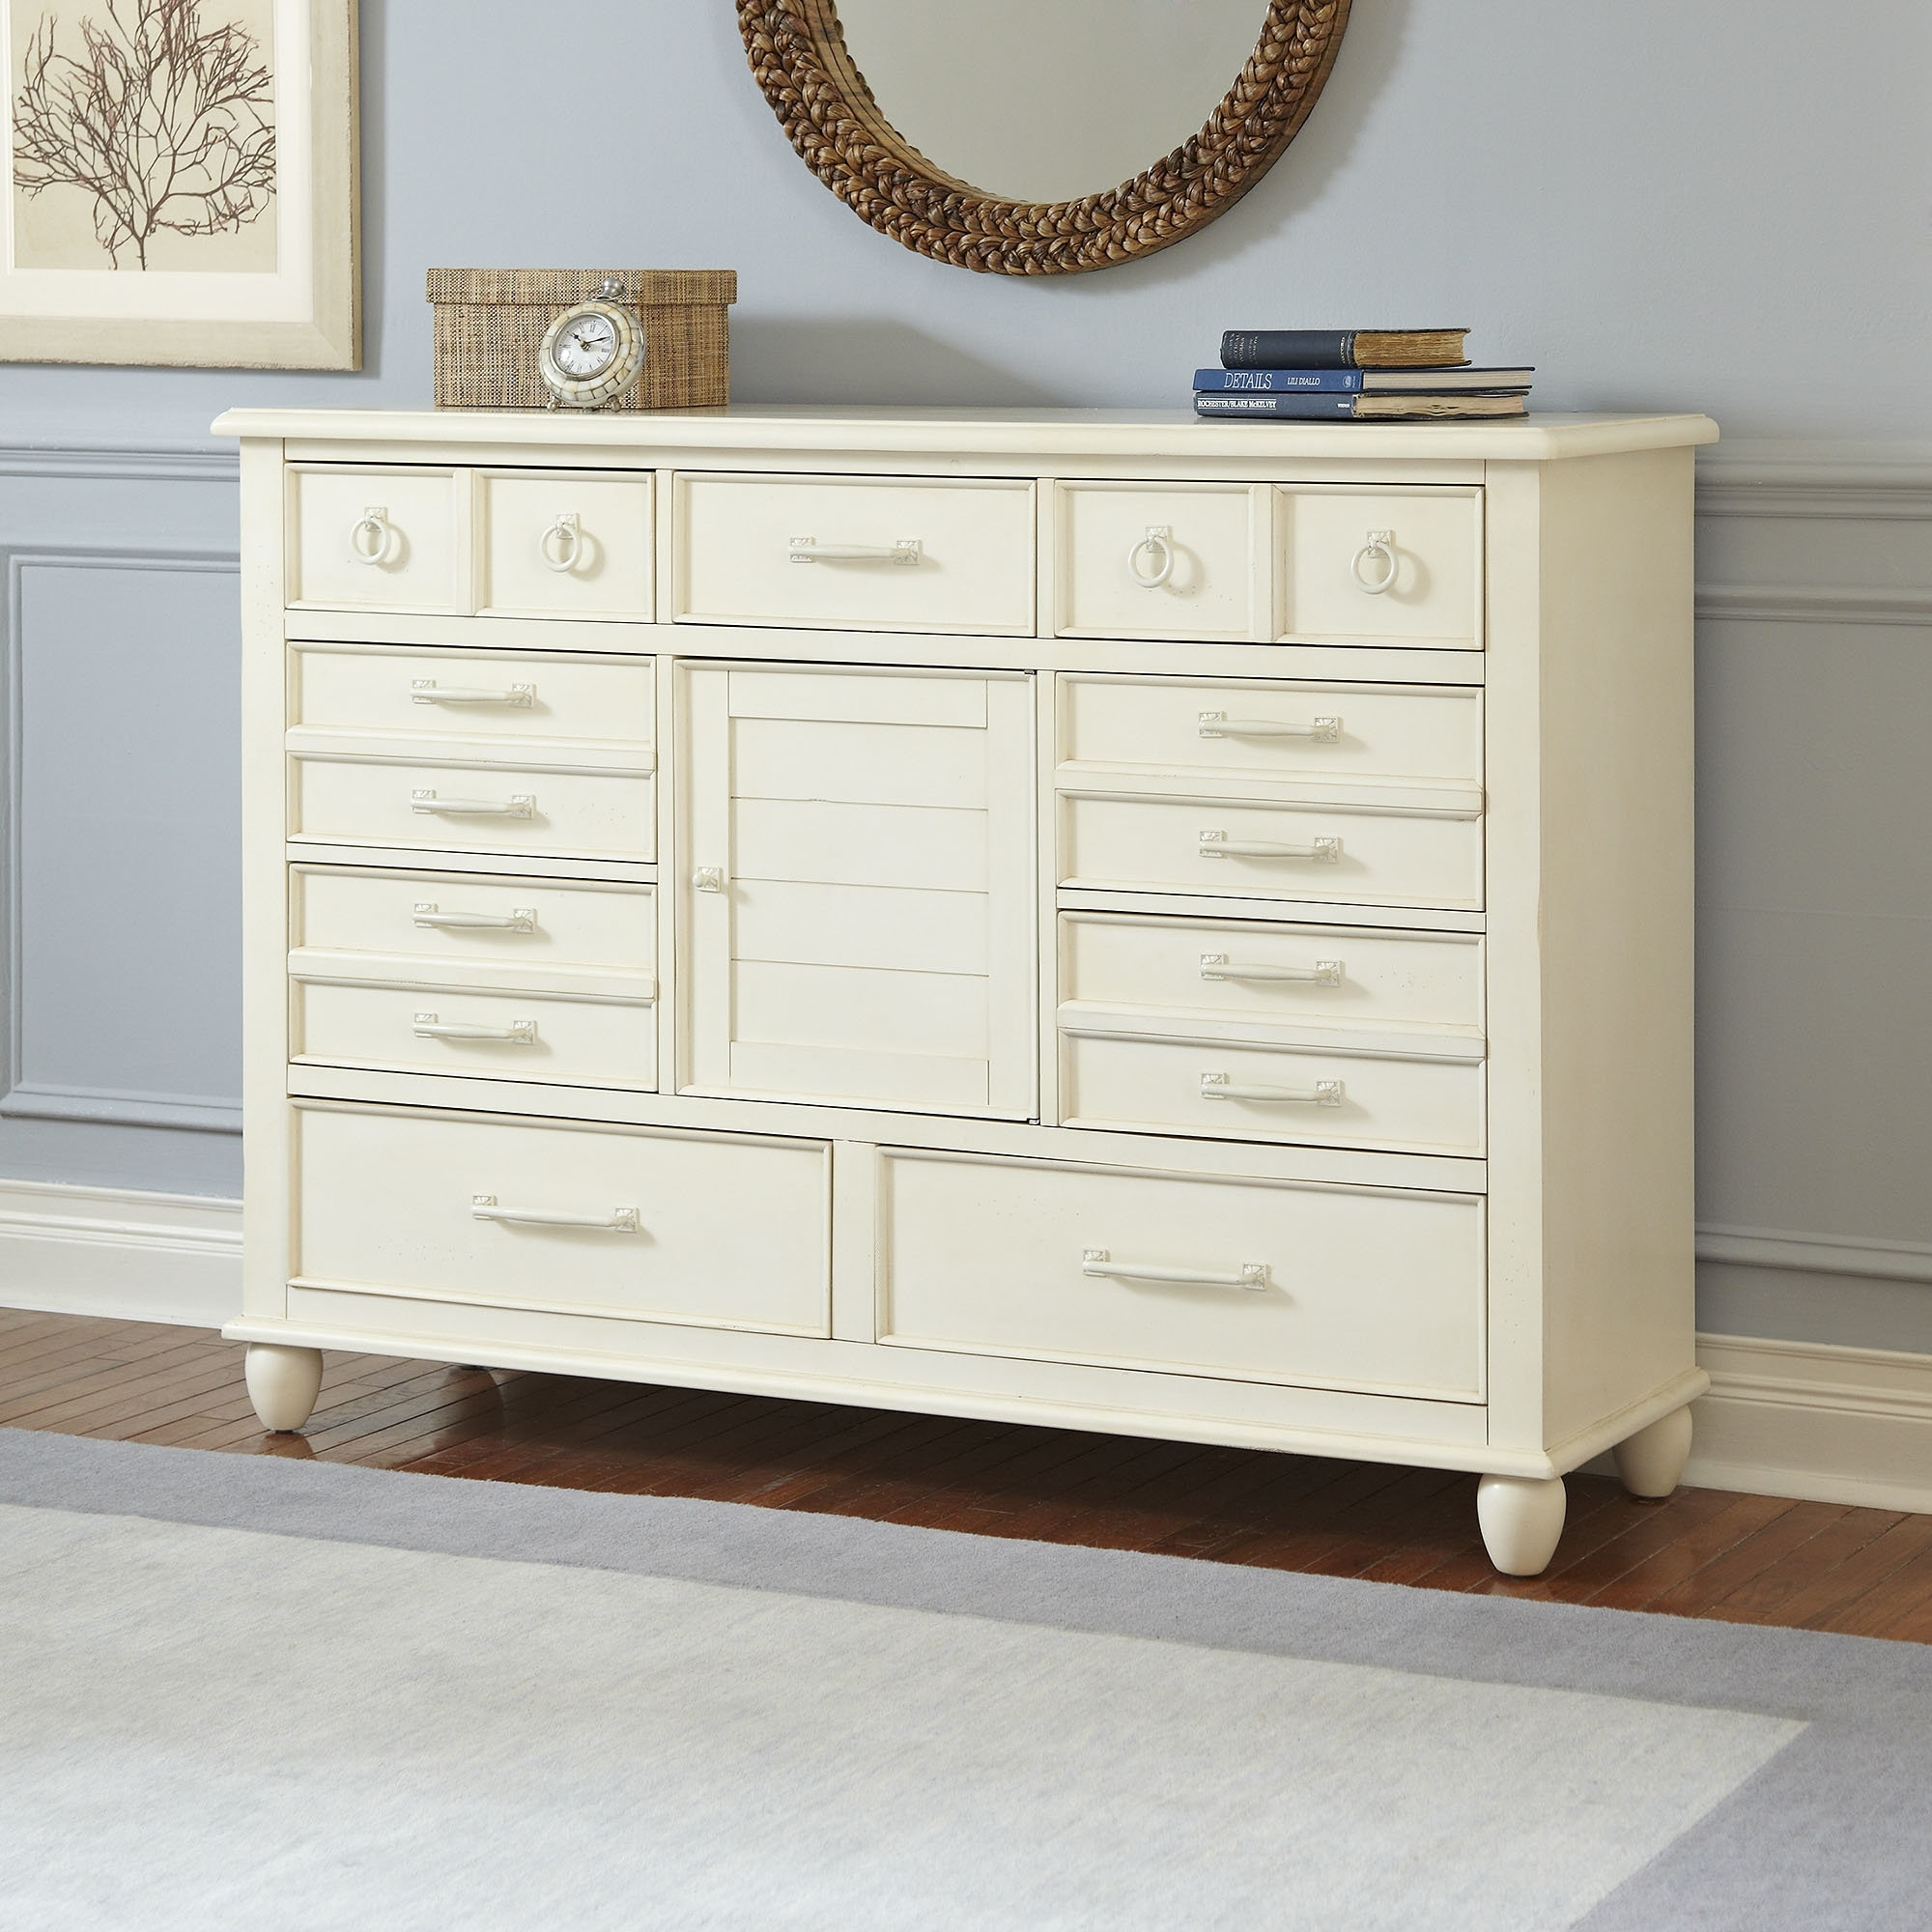 Birch Lane™ Reeves Combo Dresser & Reviews | Birch Lane within Parrish Sideboards (Image 5 of 30)